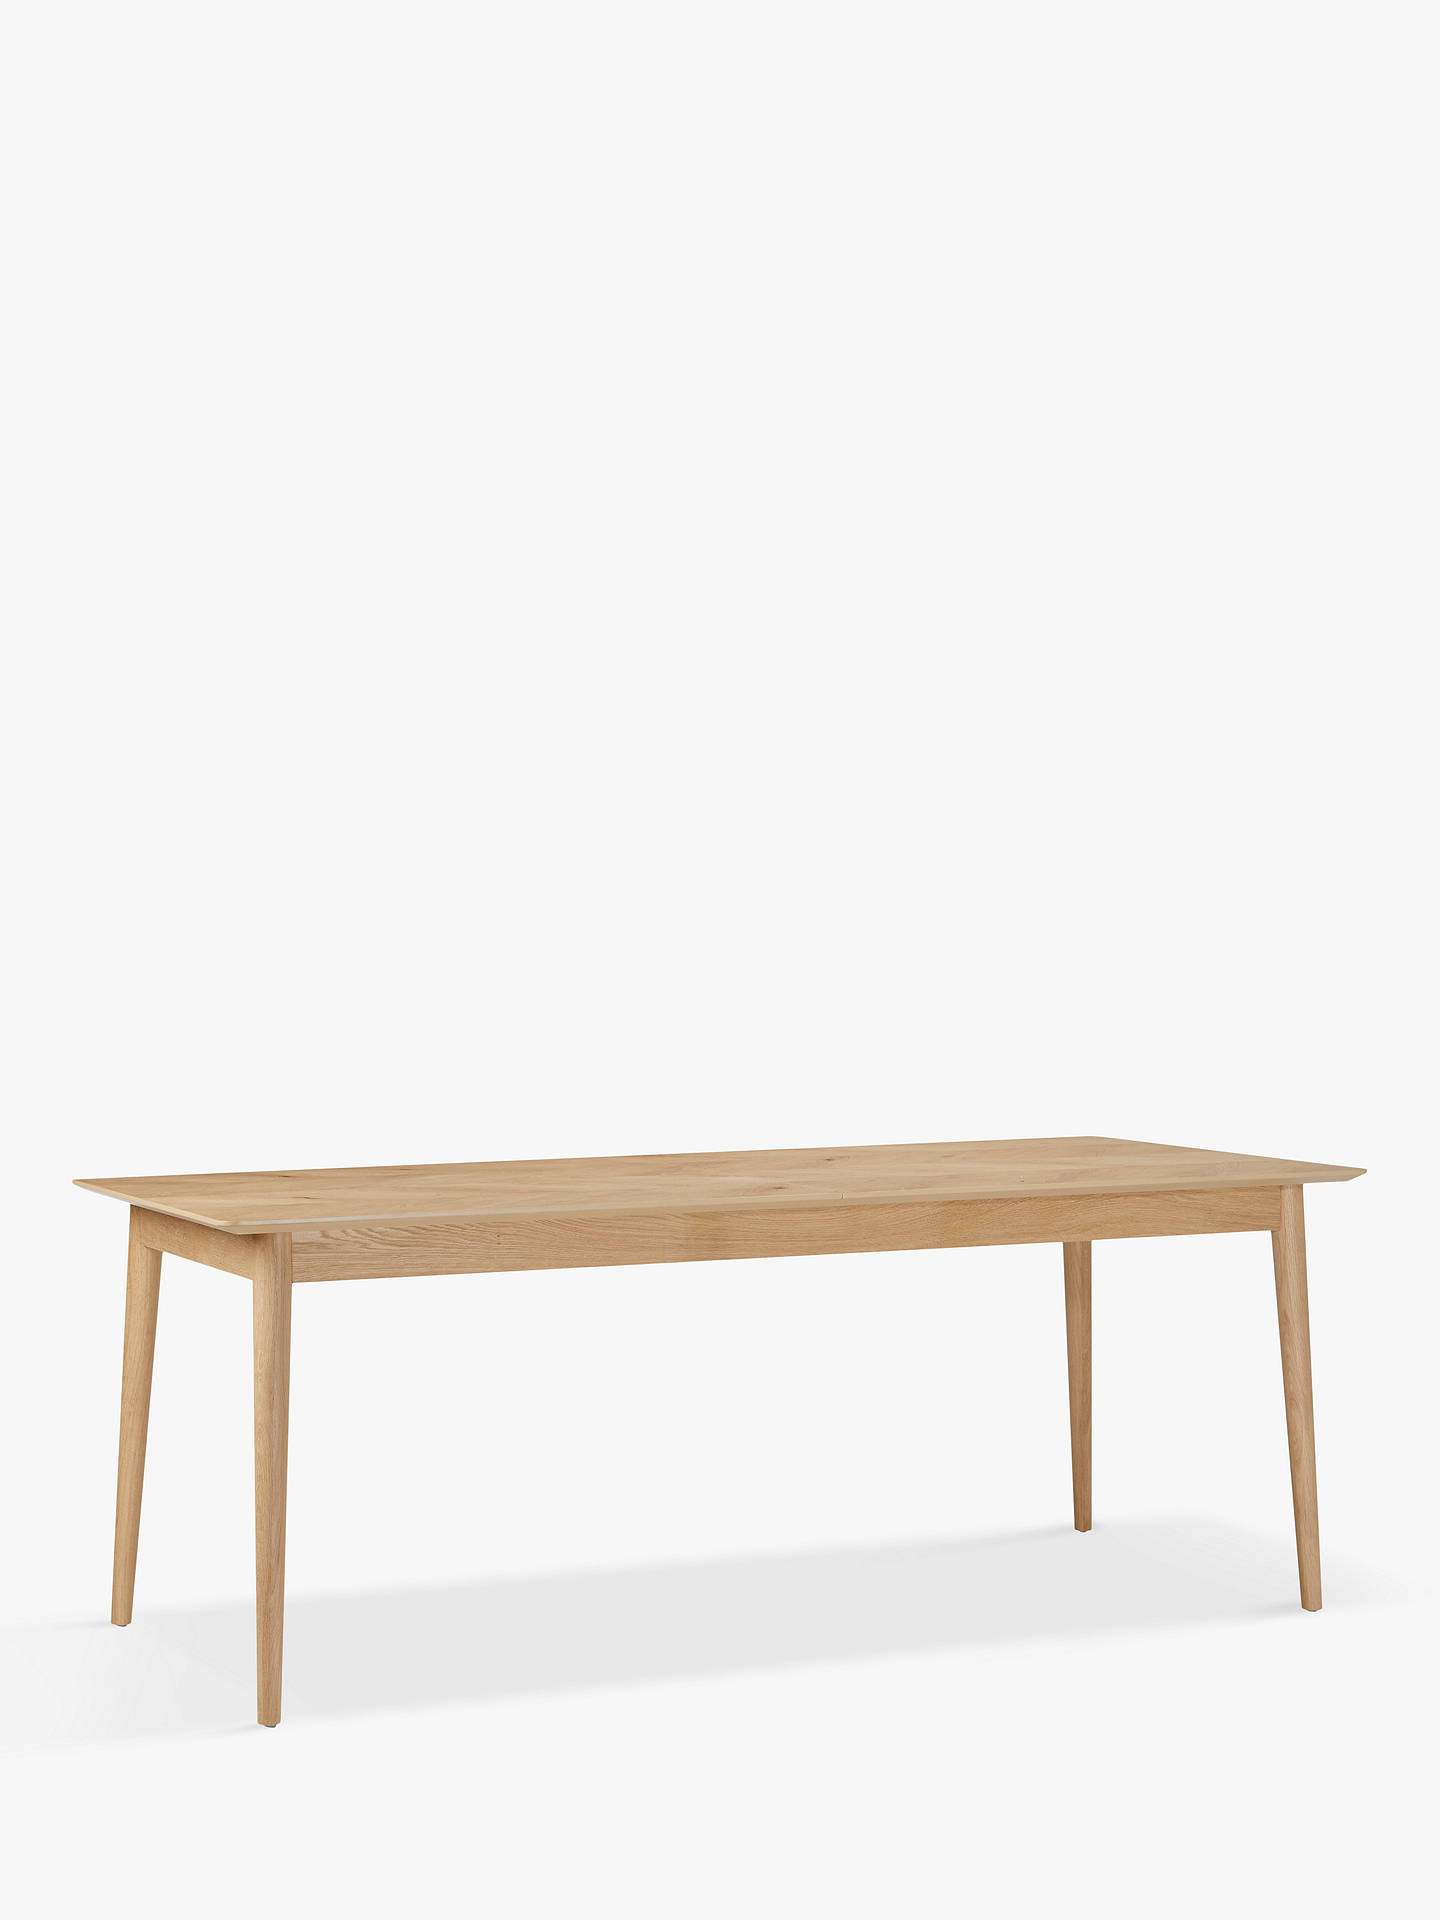 Hudson Living Milano 8 10 Seater Extending Dining Table Oak Online At Johnlewis